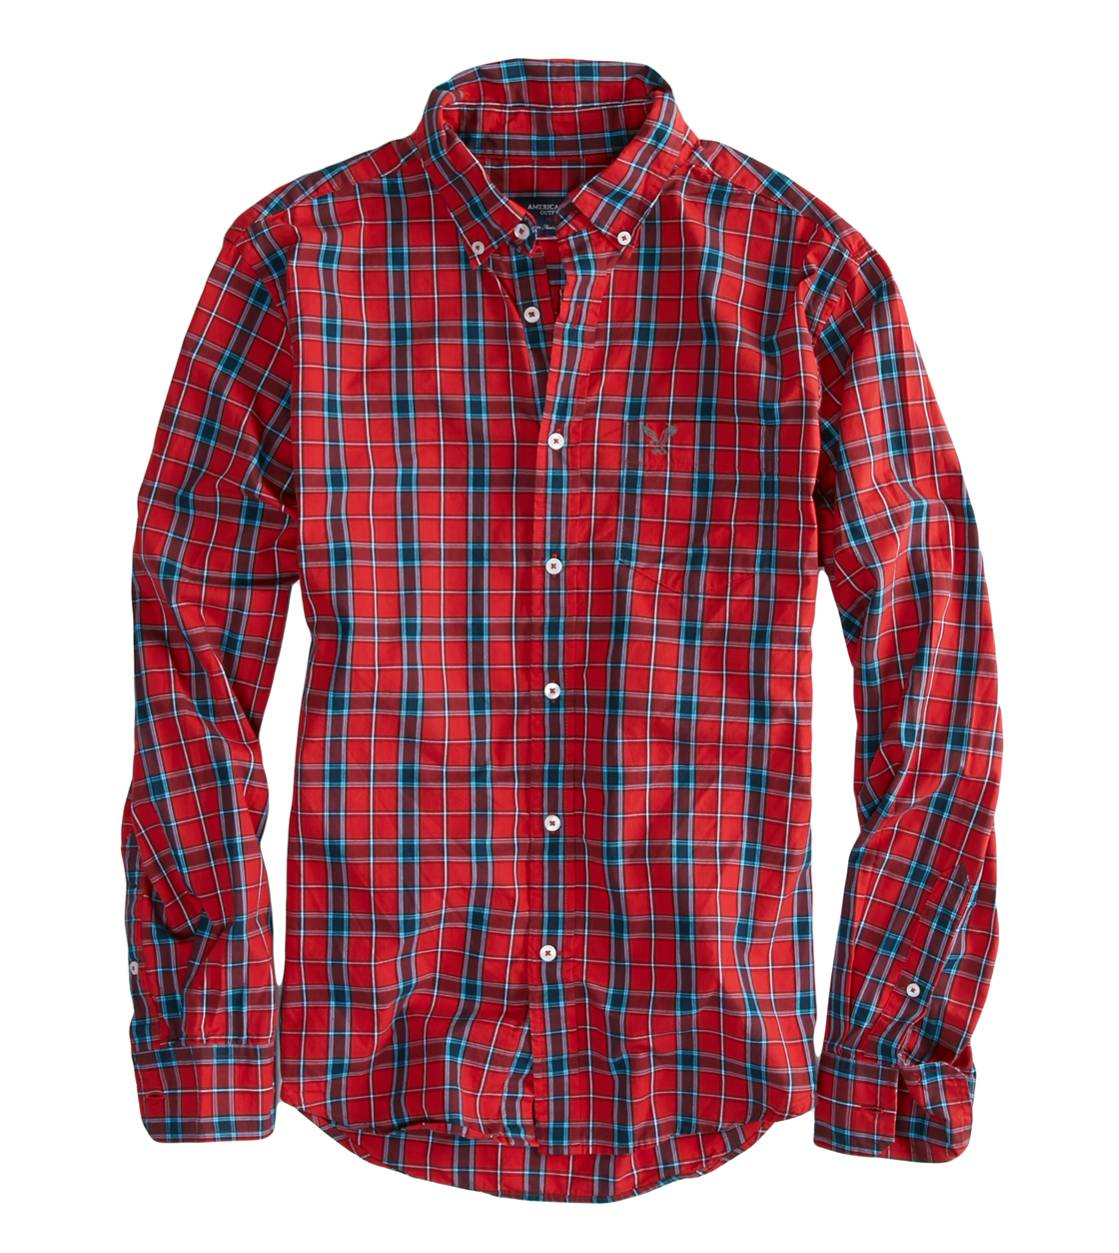 Jingle Red AEO Factory Plaid Button Down Shirt